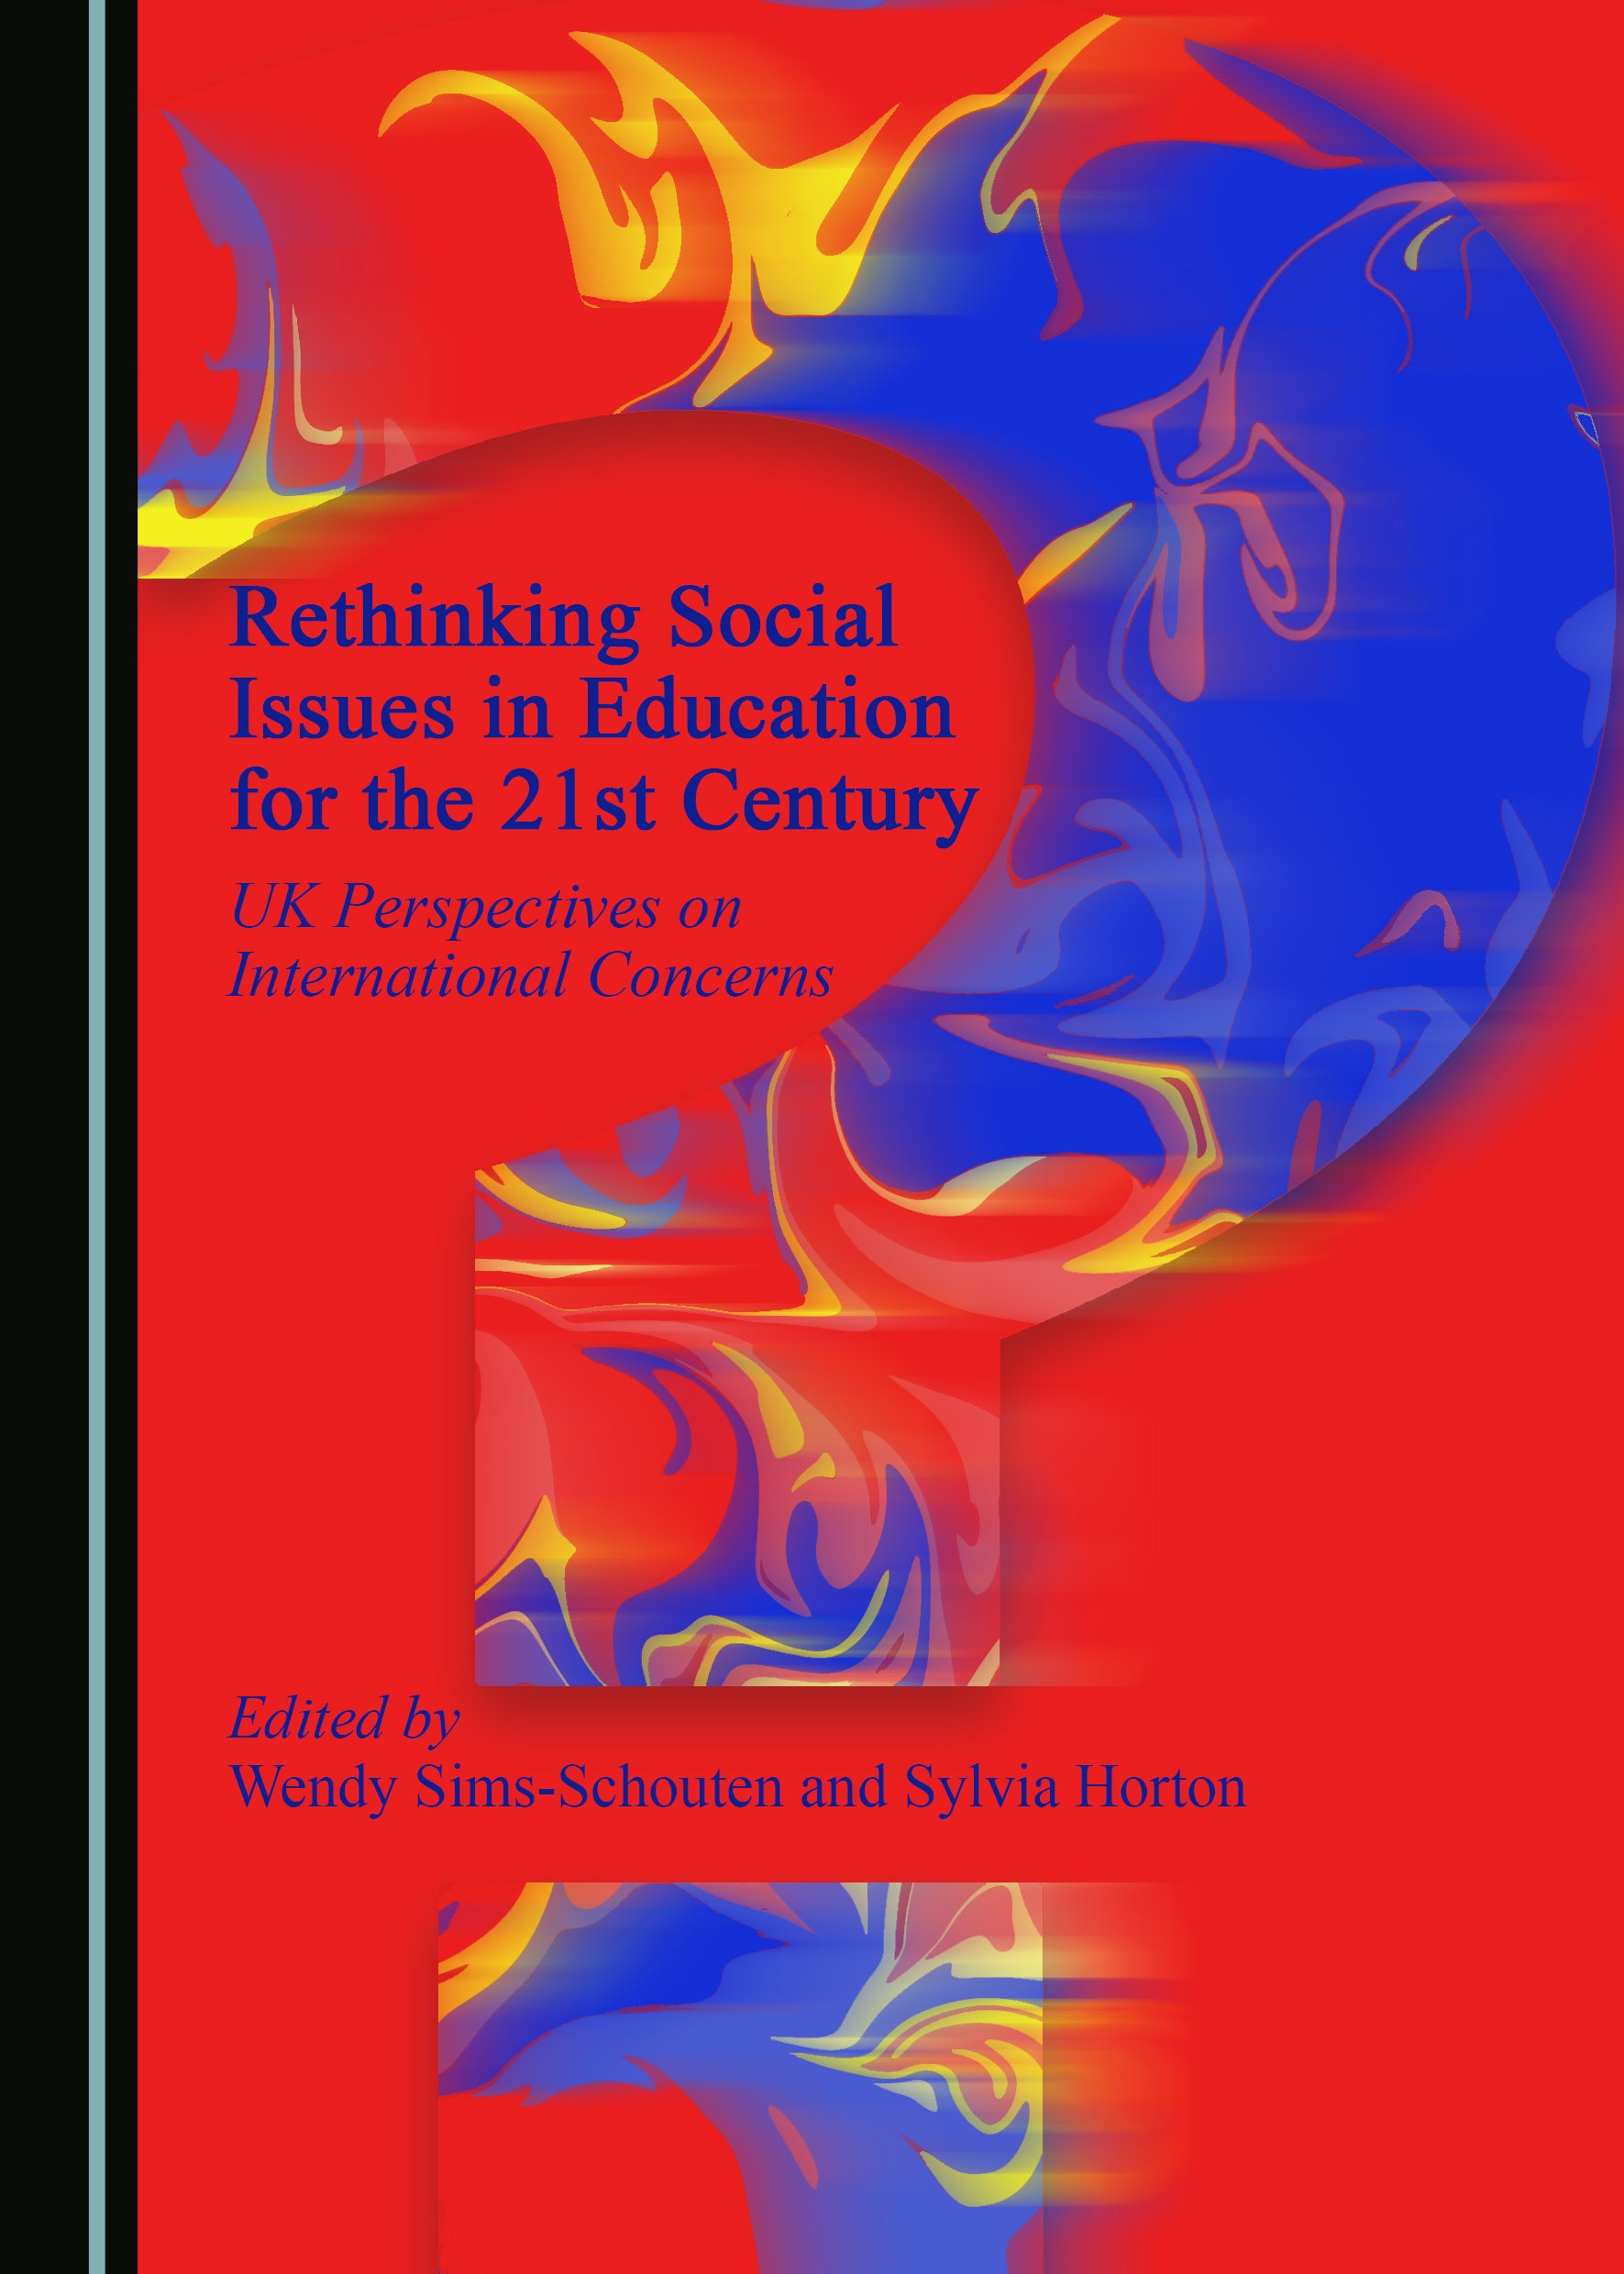 Rethinking Social Issues in Education for the 21st Century: UK Perspectives on International Concerns